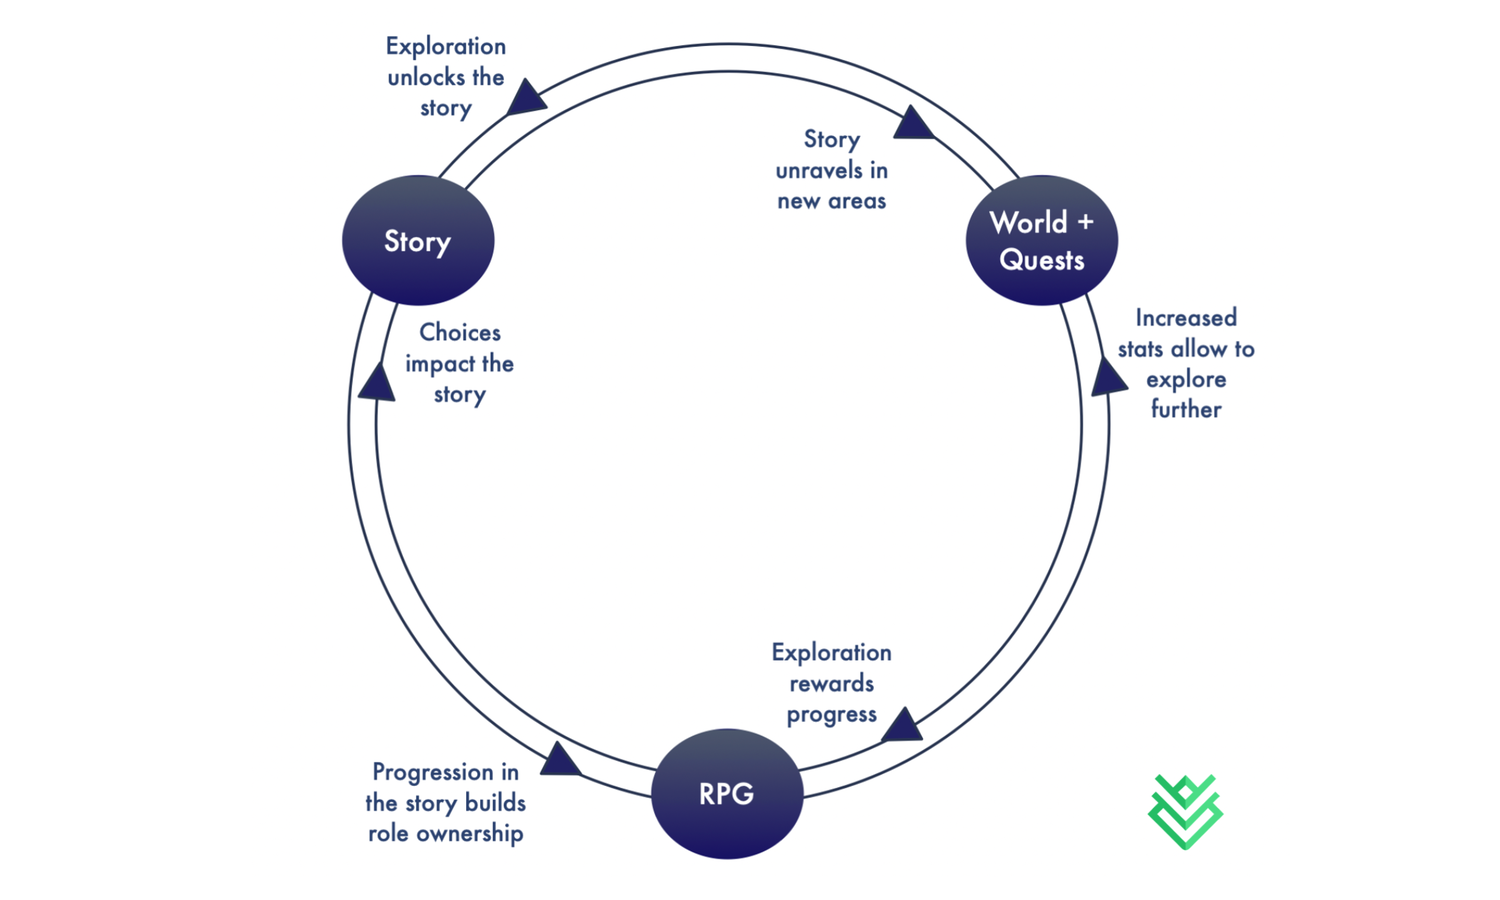 Classical open world RPGs' core gameplay and progression loop that is built on a tight synchronisation between three core design pillars - narrative, exploration, and progression.